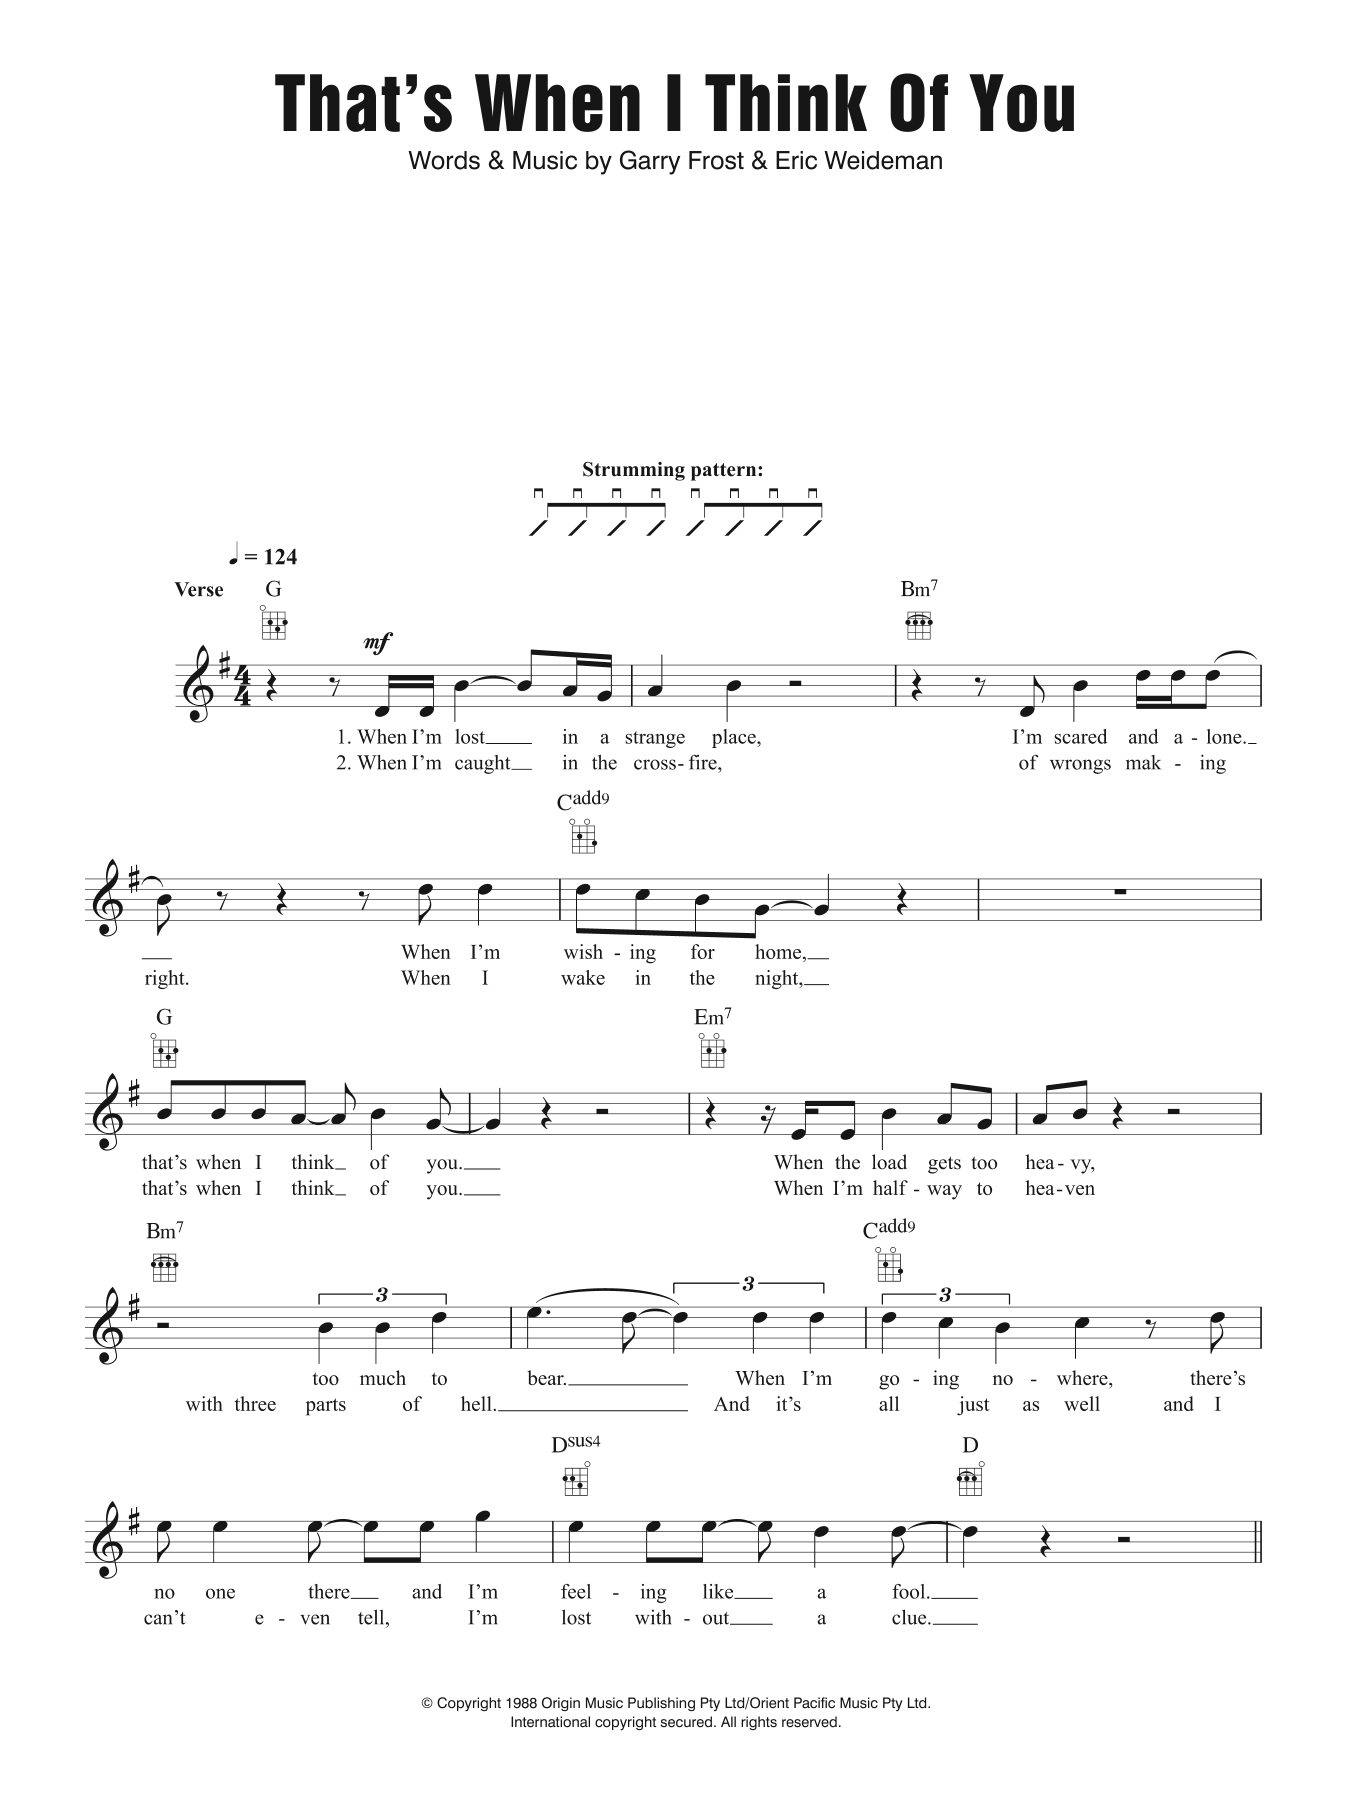 That's When I Think Of You Sheet Music